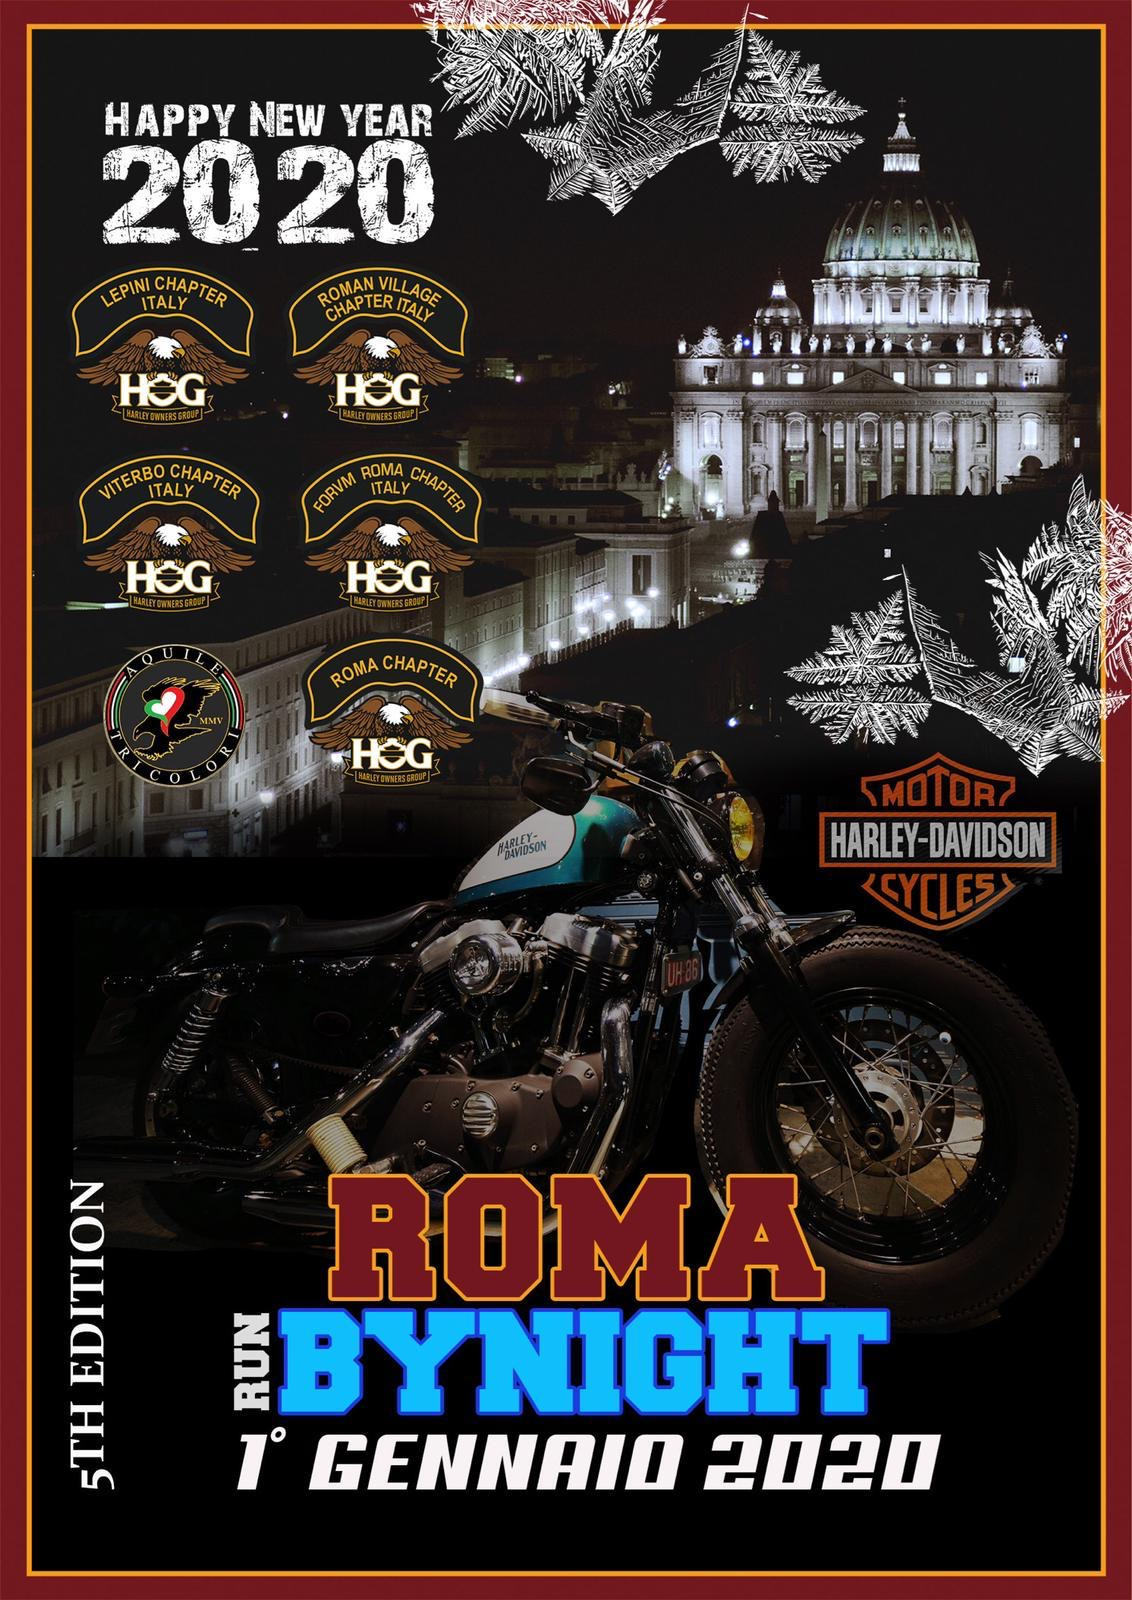 Run Roma by Night 5th Edition 1 Gennaio 2020 con Viterbo, Roma, Roman Village, Lepini, Forvm Roma Chapter e Aquile Tricolori.